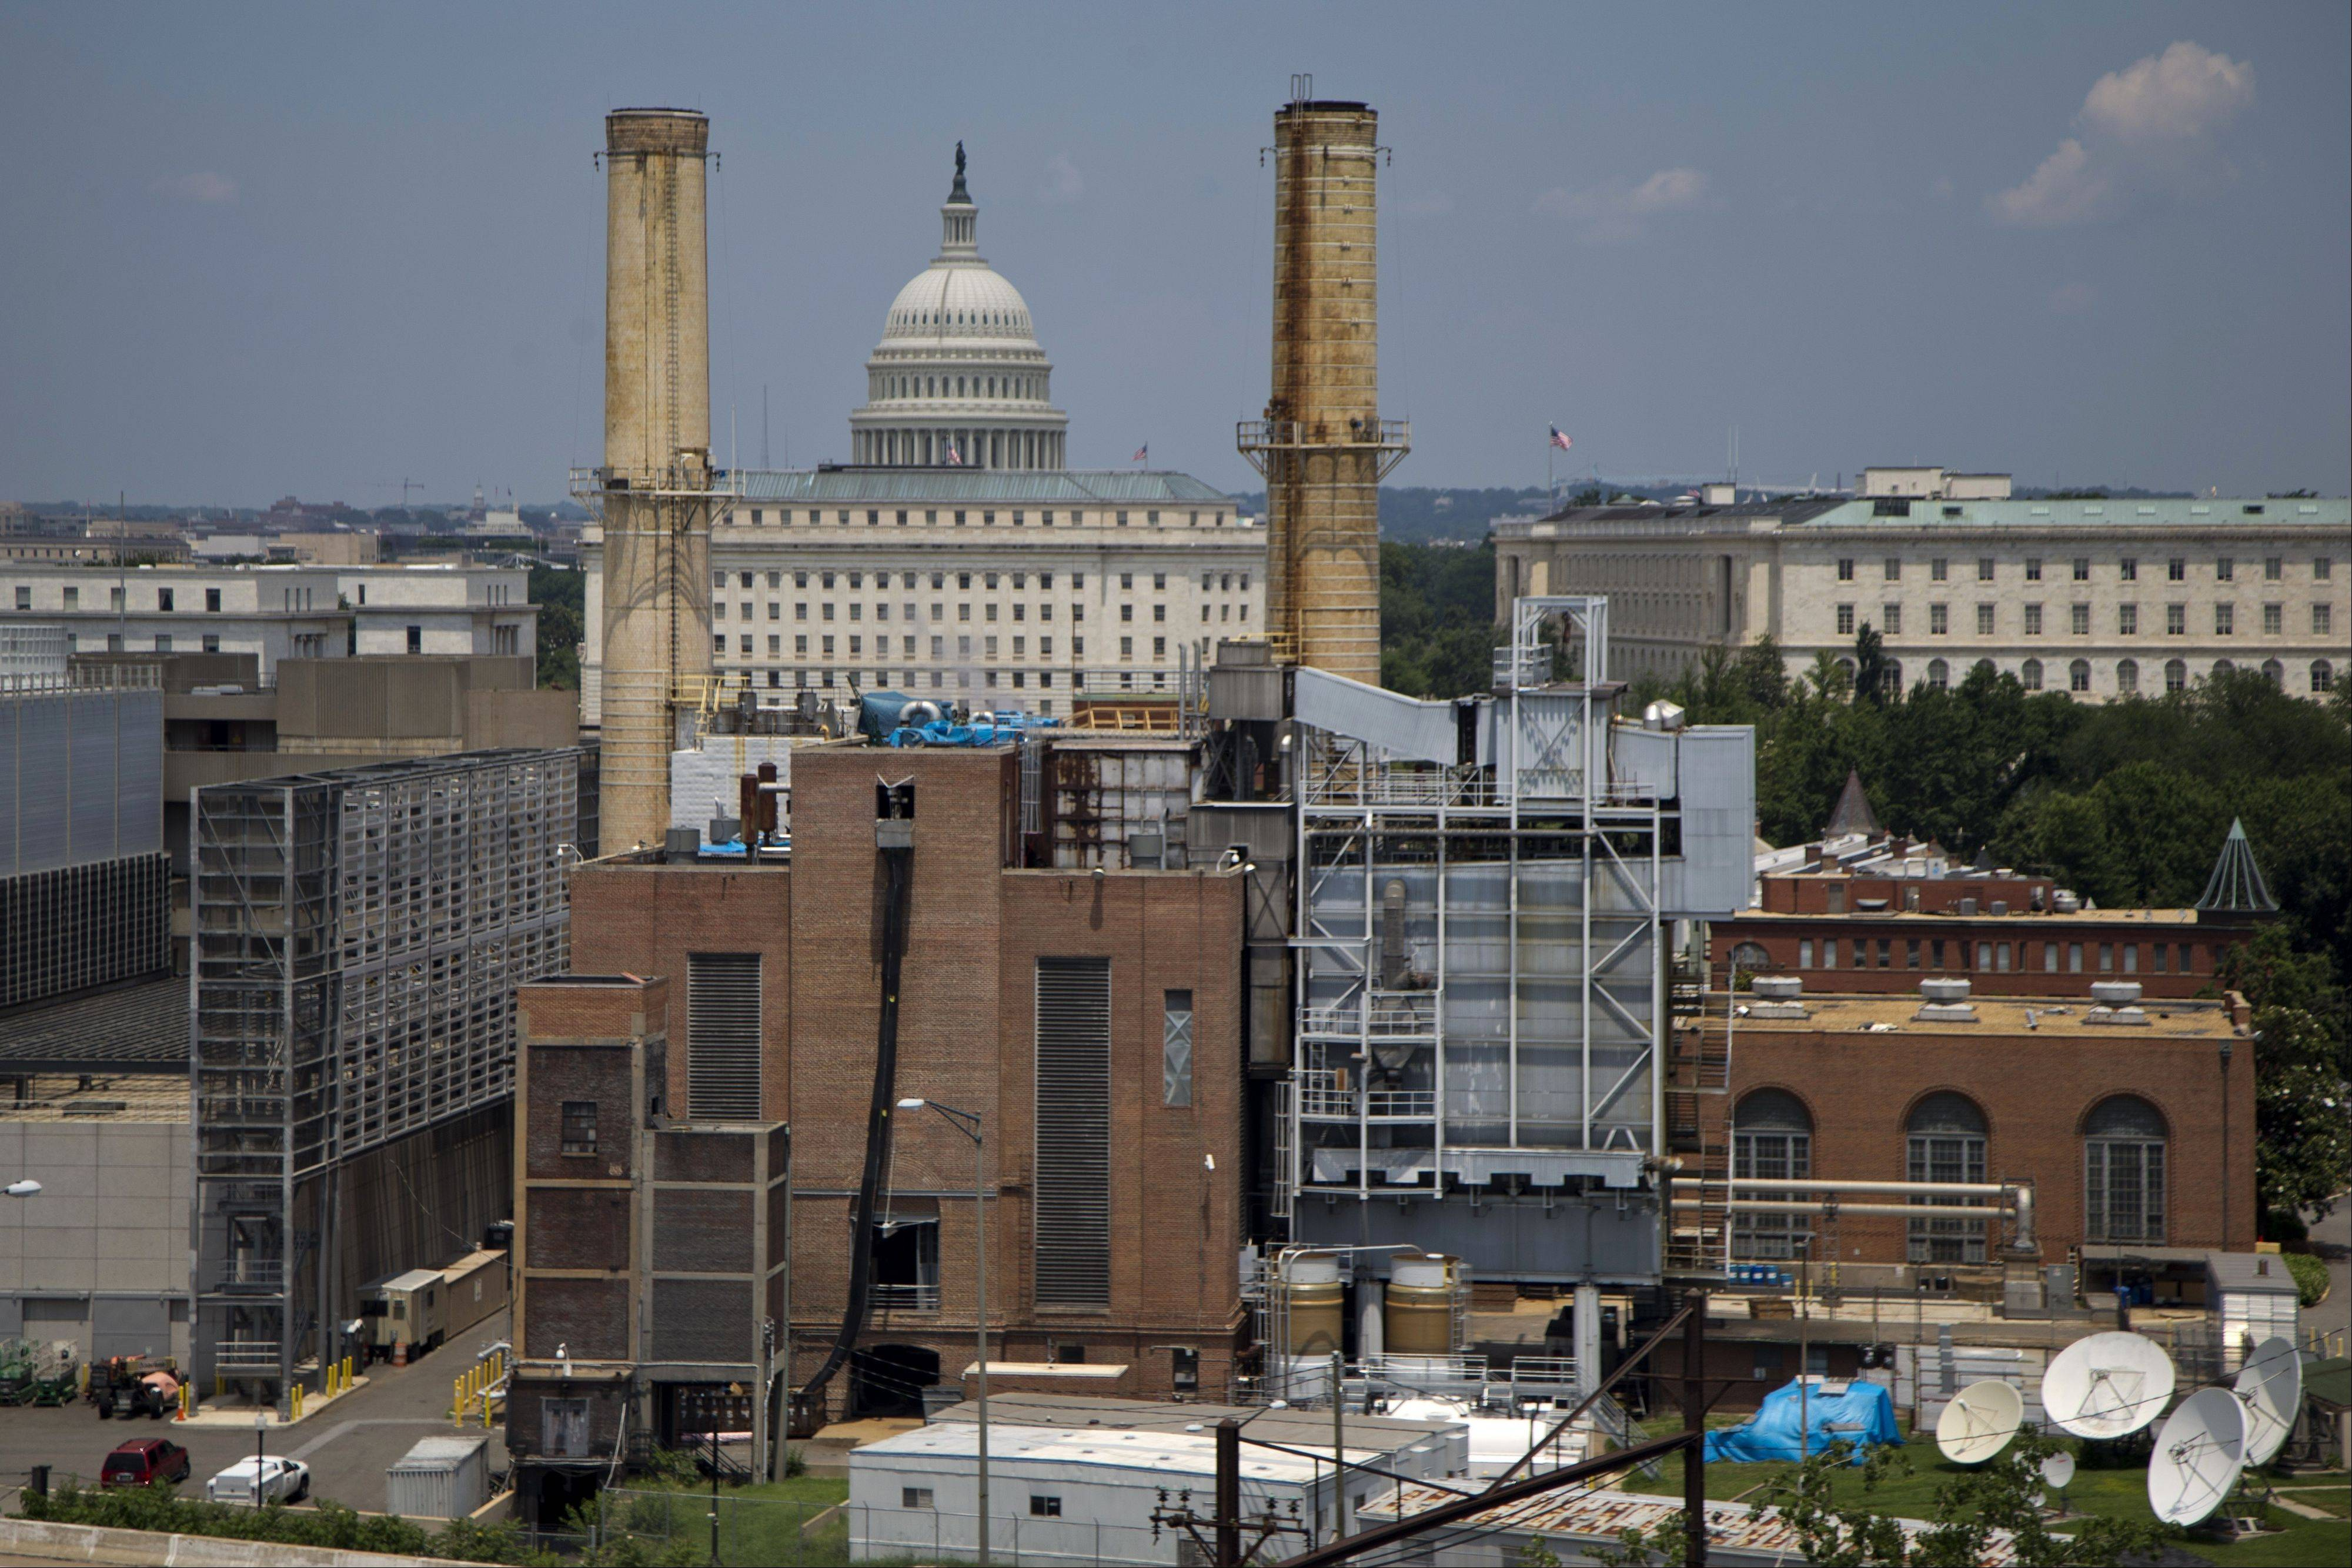 The Capitol Dome is seen behind the Capitol Power Plant in Washington Monday. The plant provides power to buildings in the Capitol Complex. President Barack Obama is running out of time to make good on his lofty vow to confront climate change head-on, and Congress is in no mood to help.